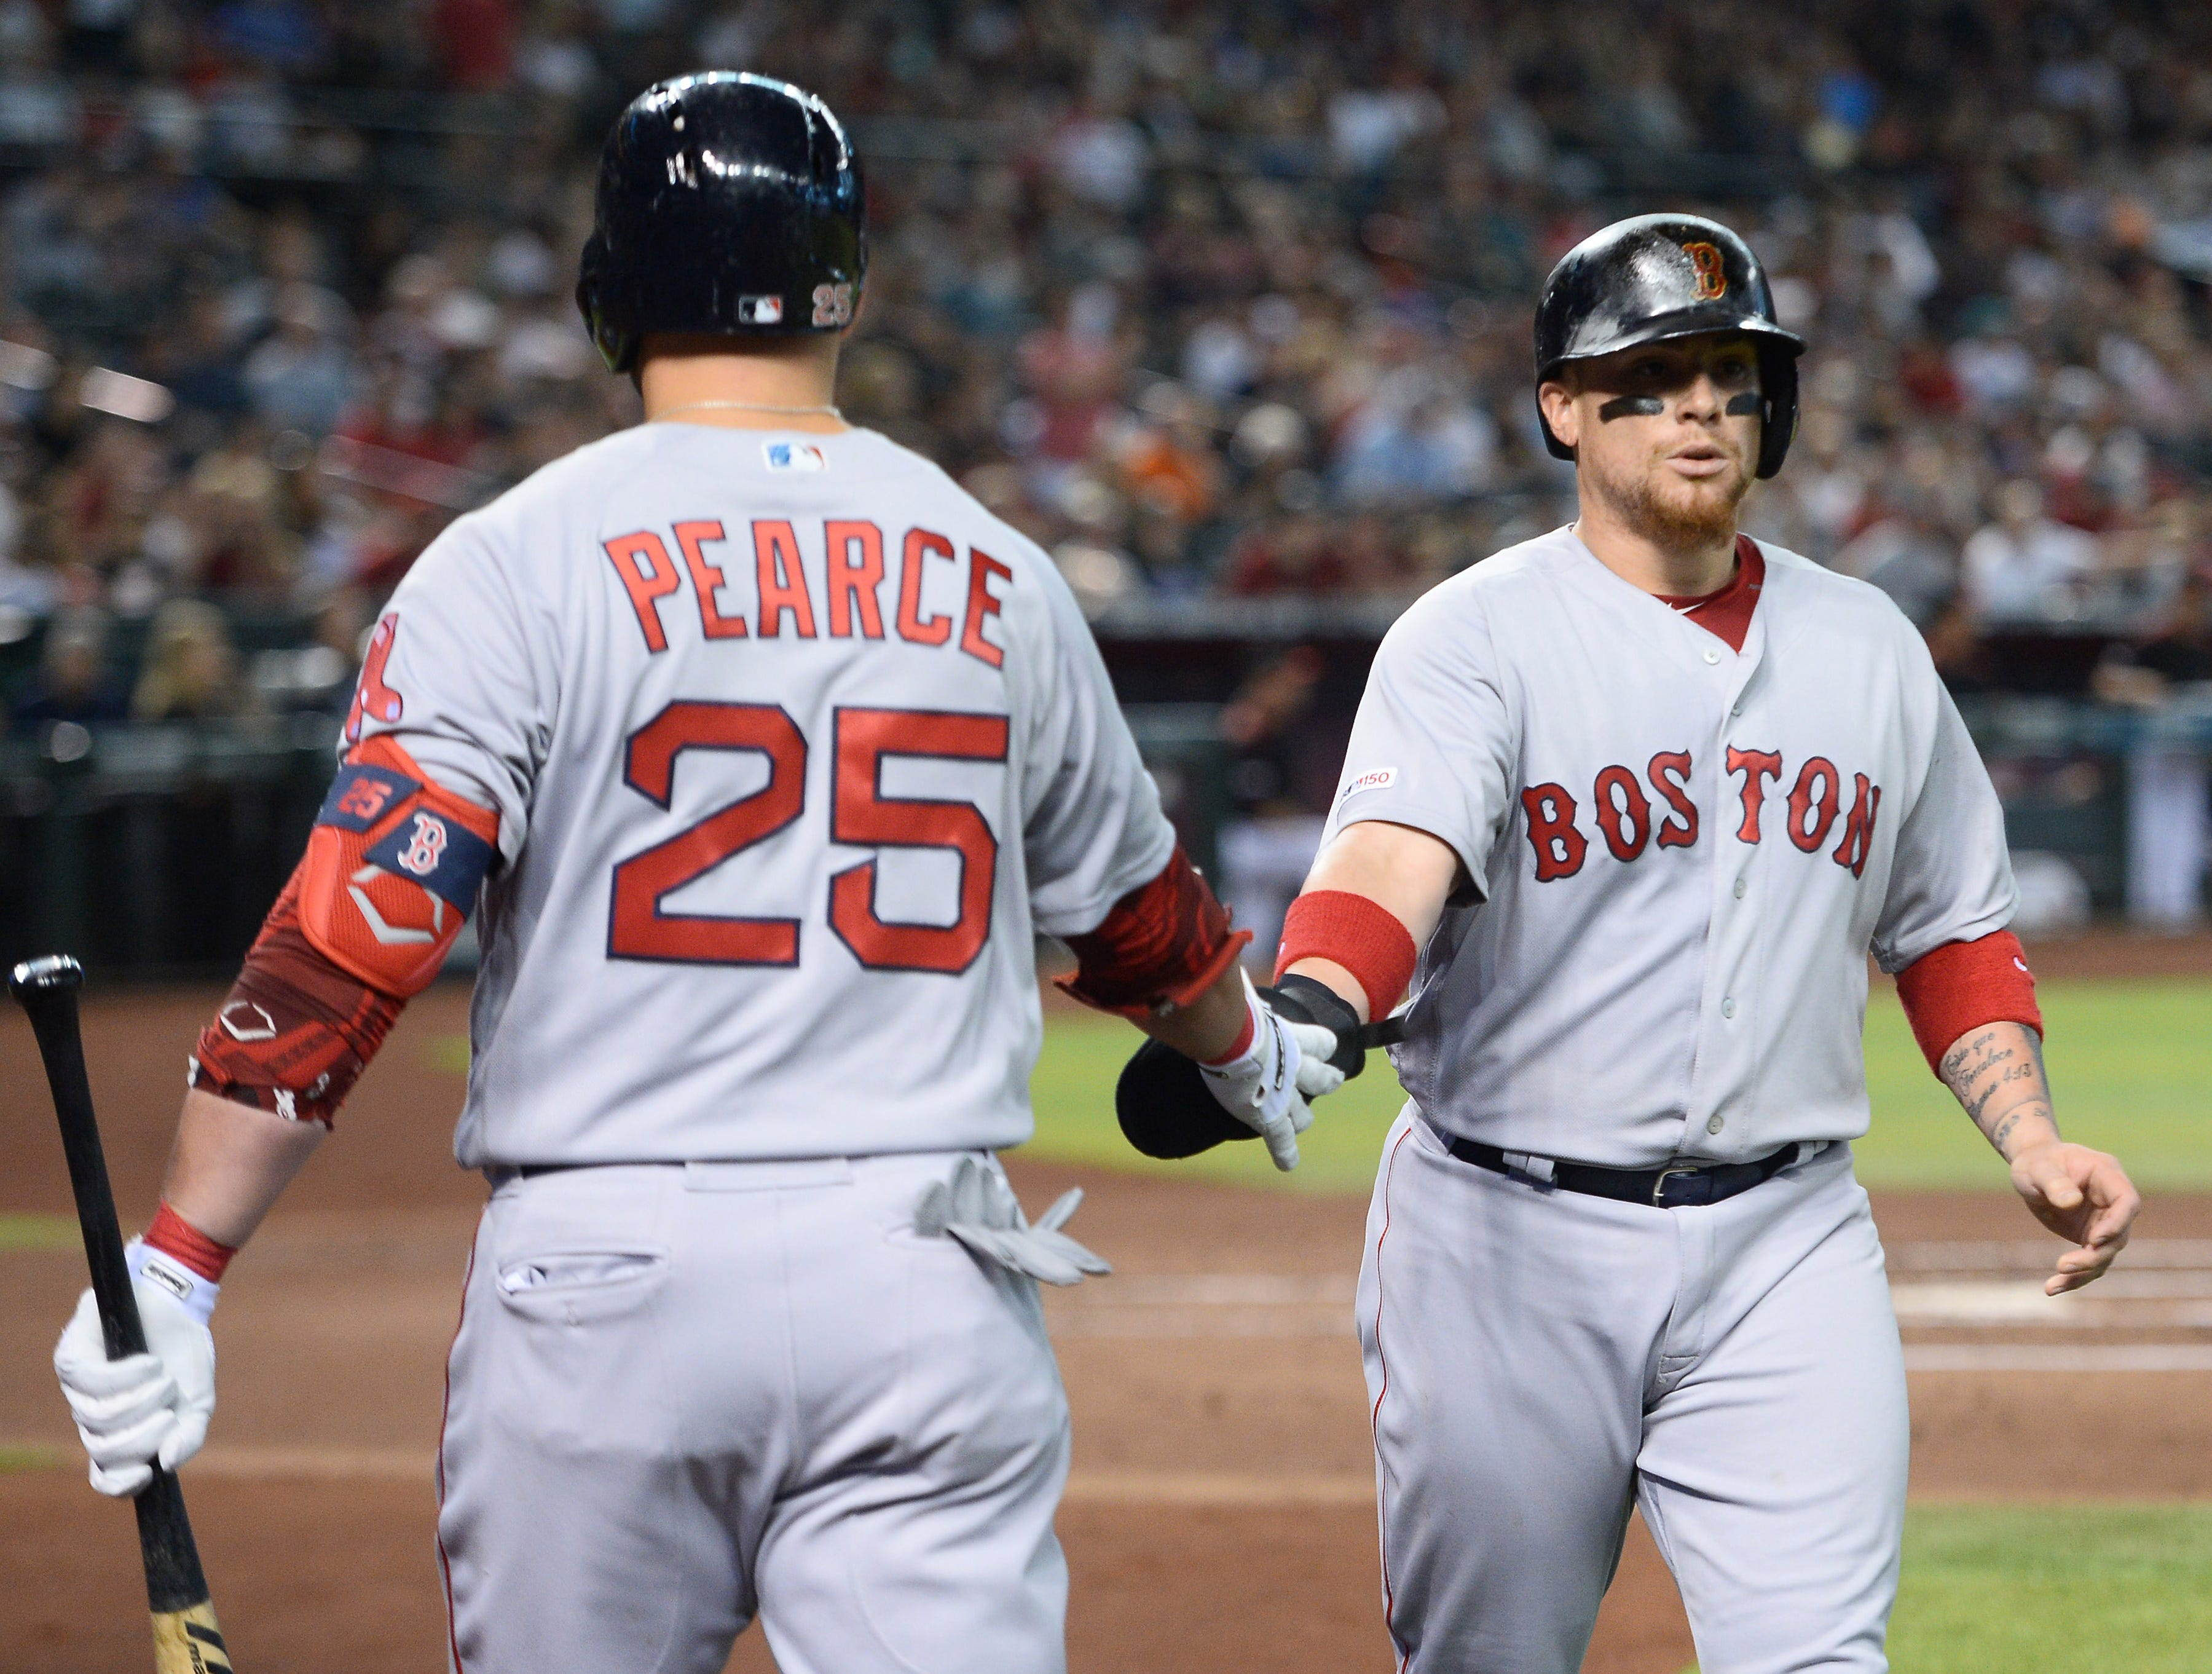 Apr 6, 2019; Phoenix, AZ, USA; Boston Red Sox catcher Christian Vazquez (7) slaps hands with Boston Red Sox first baseman Steve Pearce (25) after scoring a run against the Arizona Diamondbacks during the second inning at Chase Field. Mandatory Credit: Joe Camporeale-USA TODAY Sports